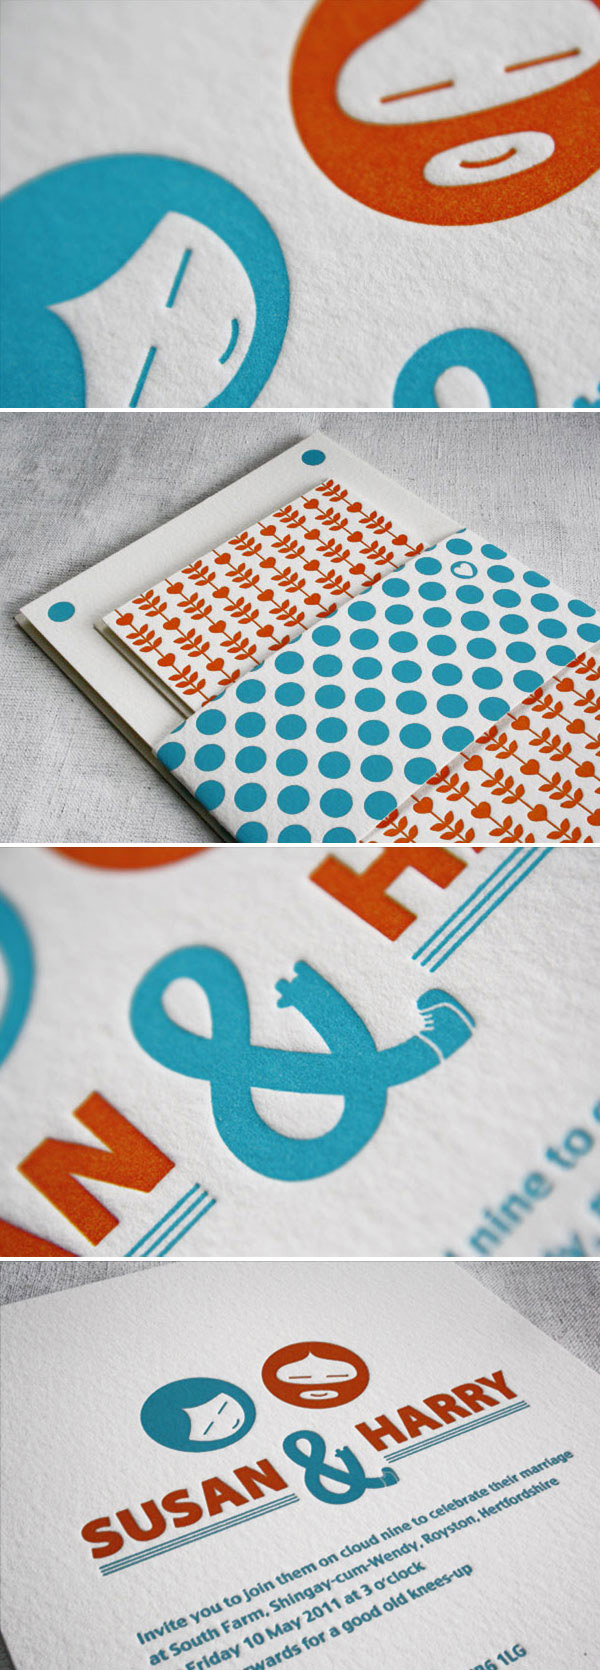 Eva Slade 3 Rock My Wedding Sponsor... Eva Slade Letterpress Stationery